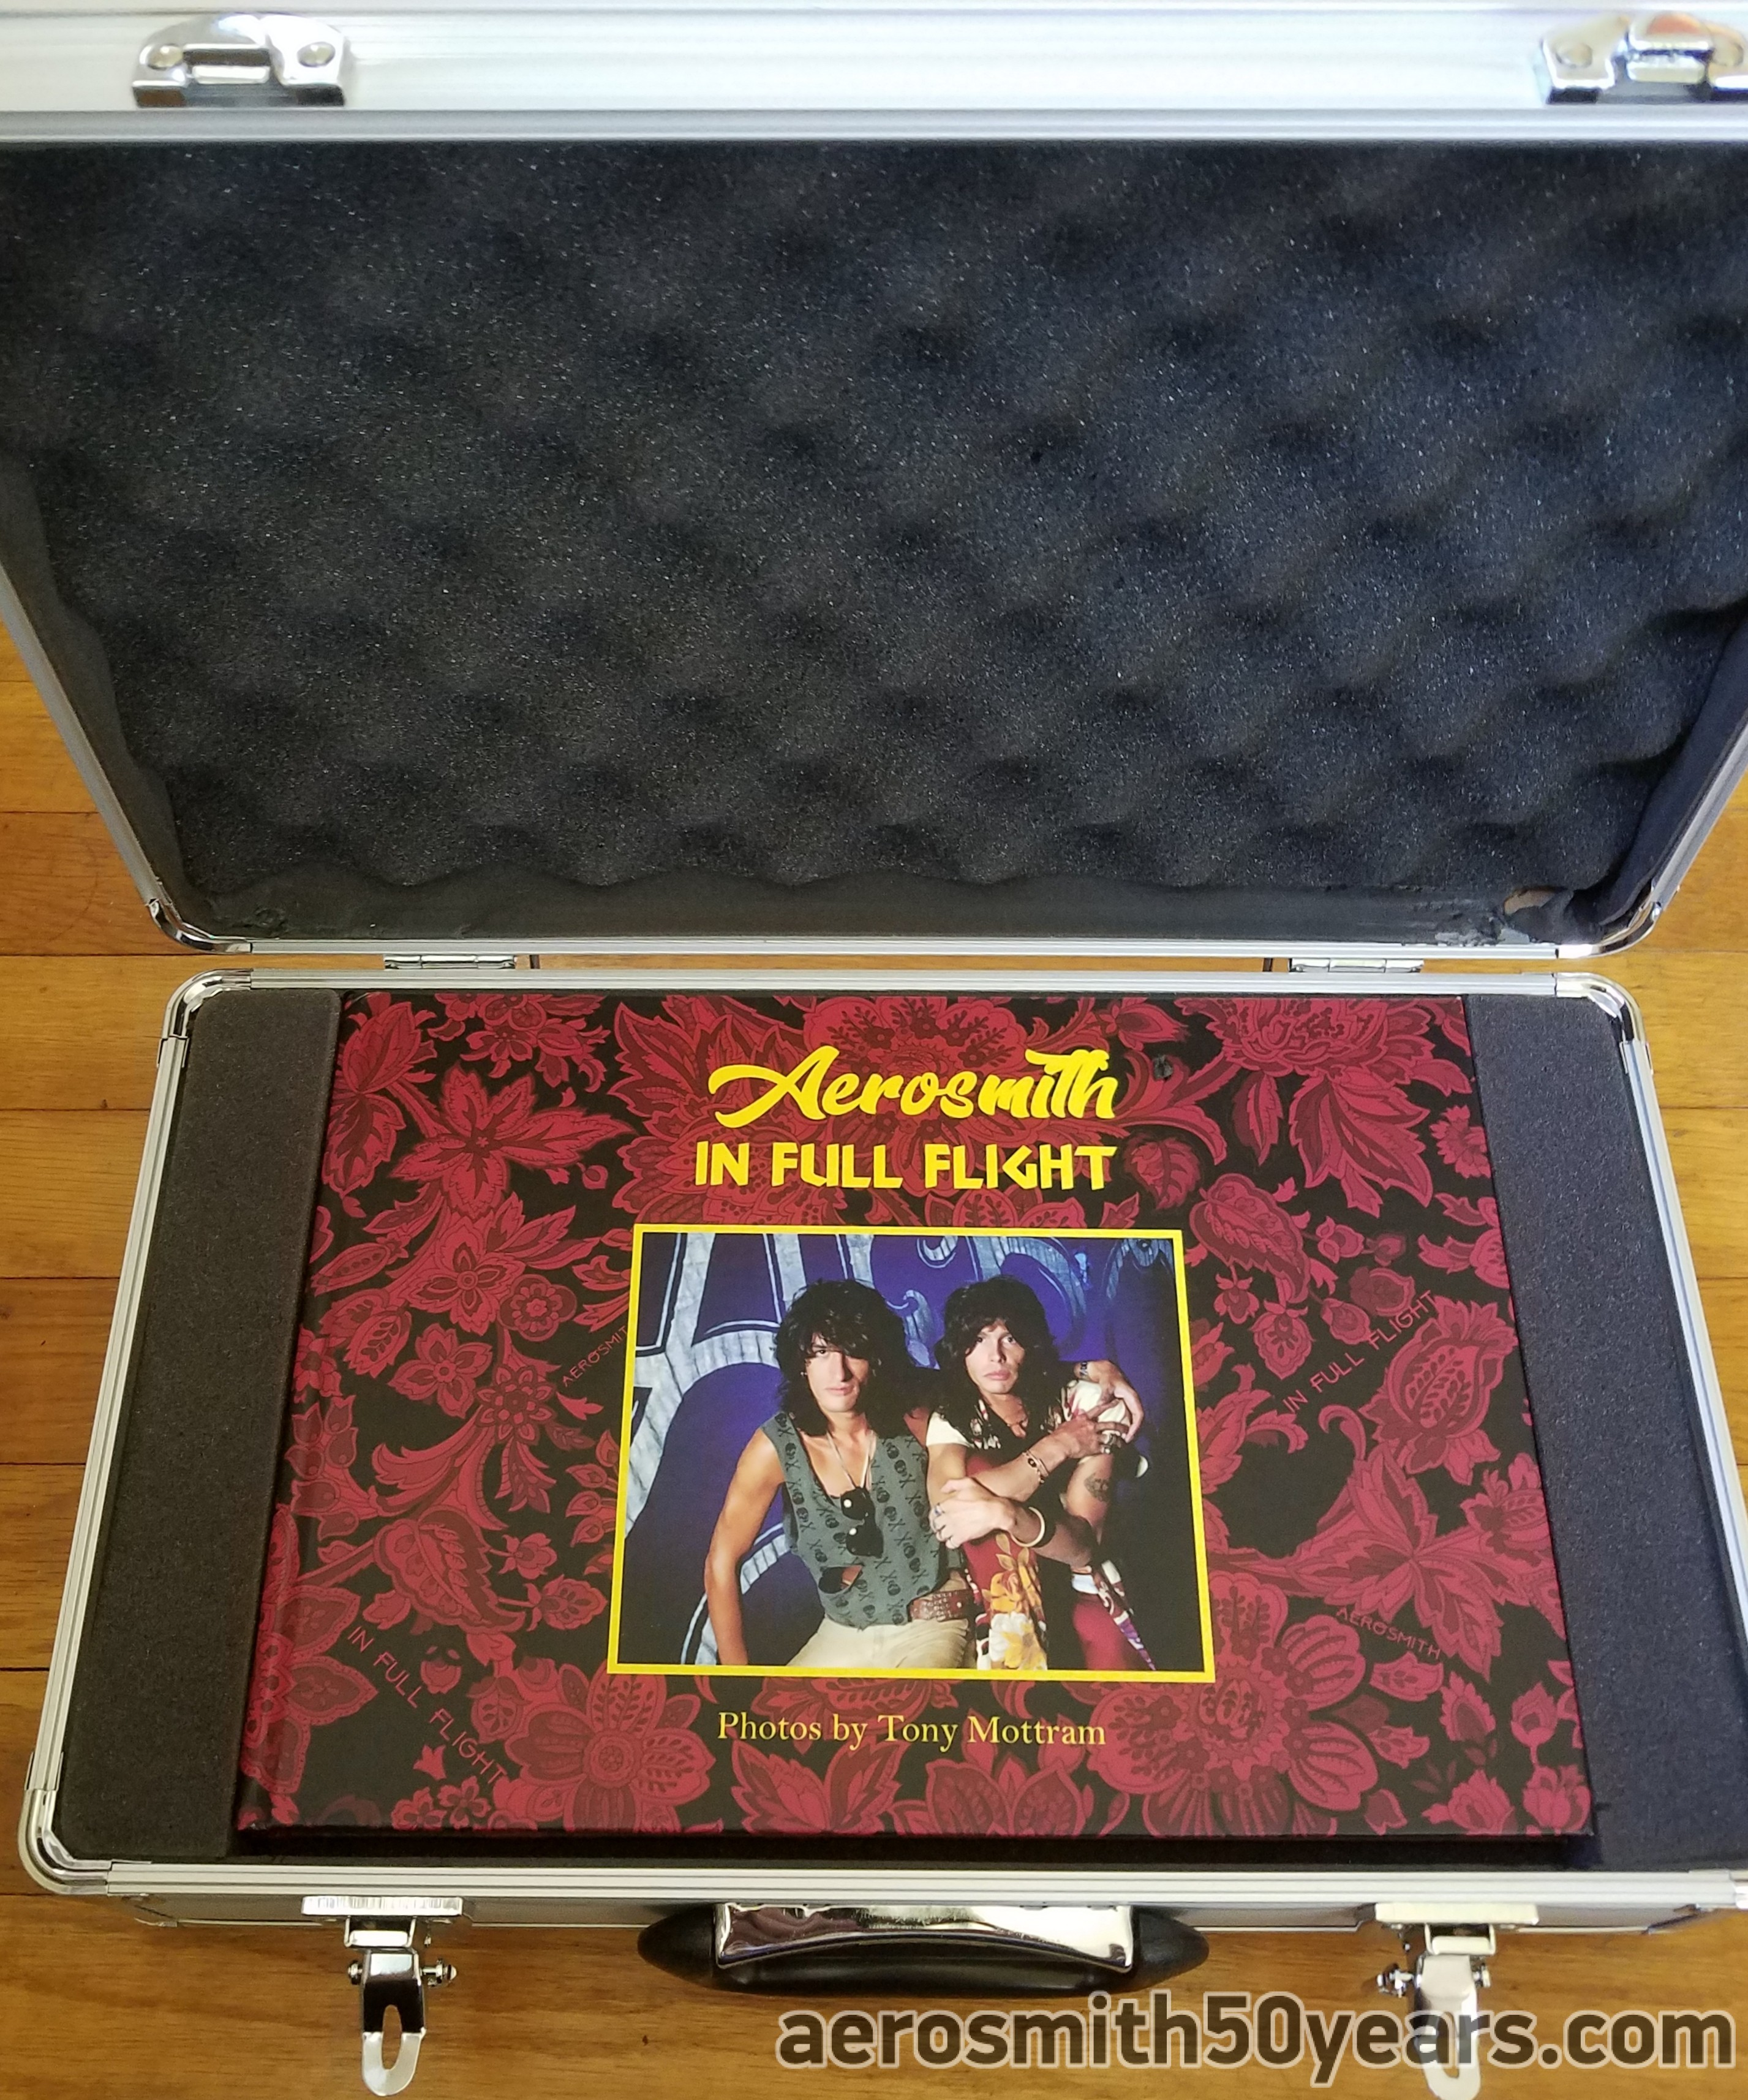 """Aerosmith  """"In Full Flight"""" Photograph Book By Tony Mottram. Released In 2017 The Book Consists Of Photos Captured During The 1980's & 90's. It Is A Limited Edition Of 300 Copies. Which You Could Purchase With Or Without Flight Case."""